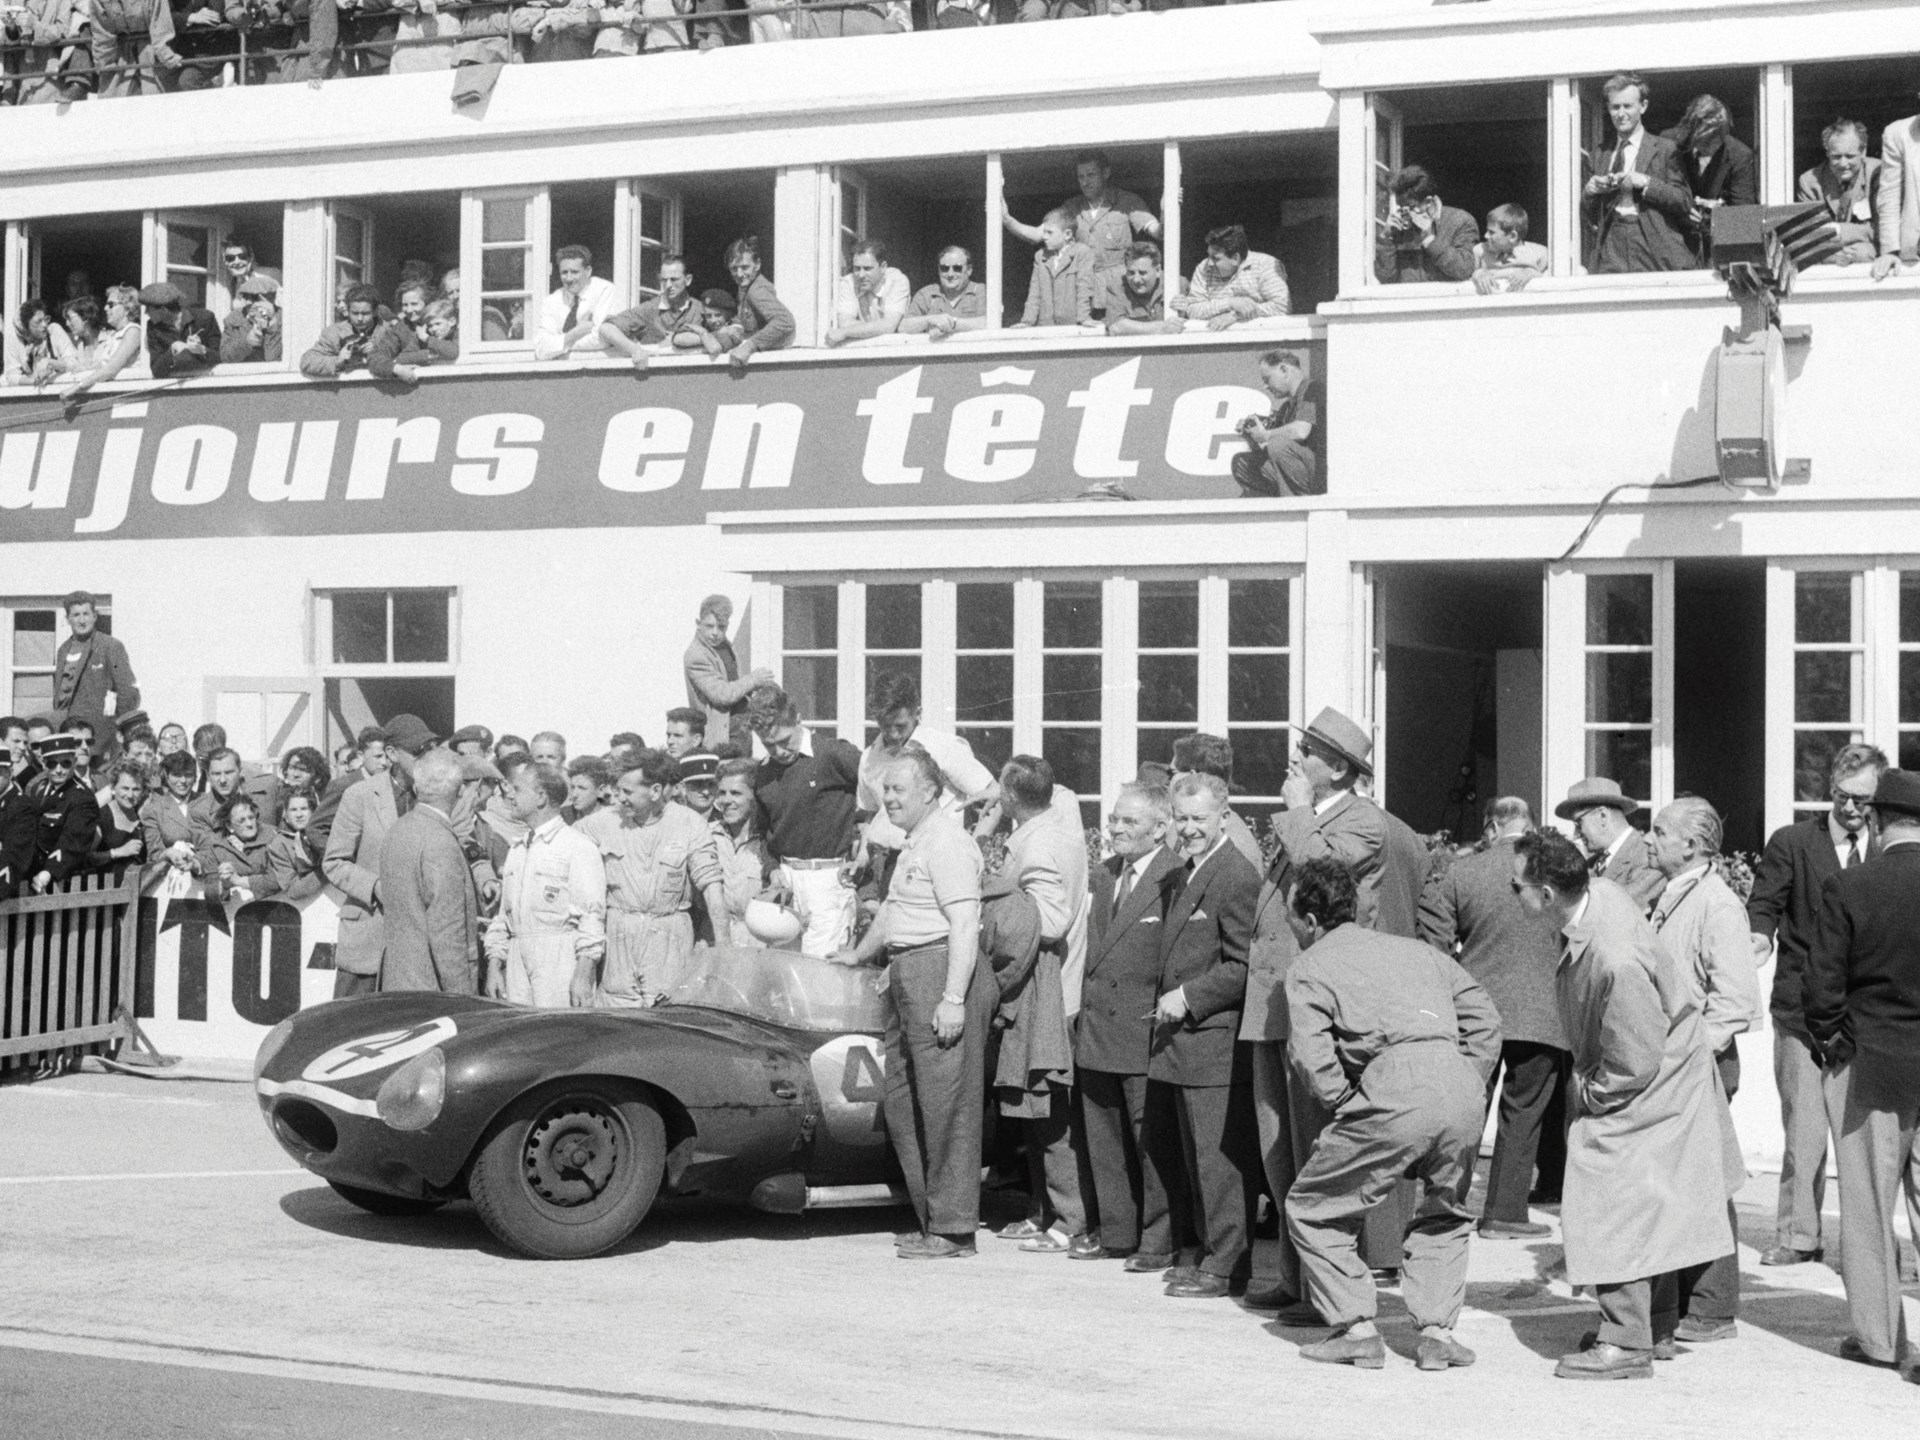 Chassis no. 501 poses with its drivers and other members of the Ecurie Ecosse team after winning the 1956 24 Hours of Le Mans.